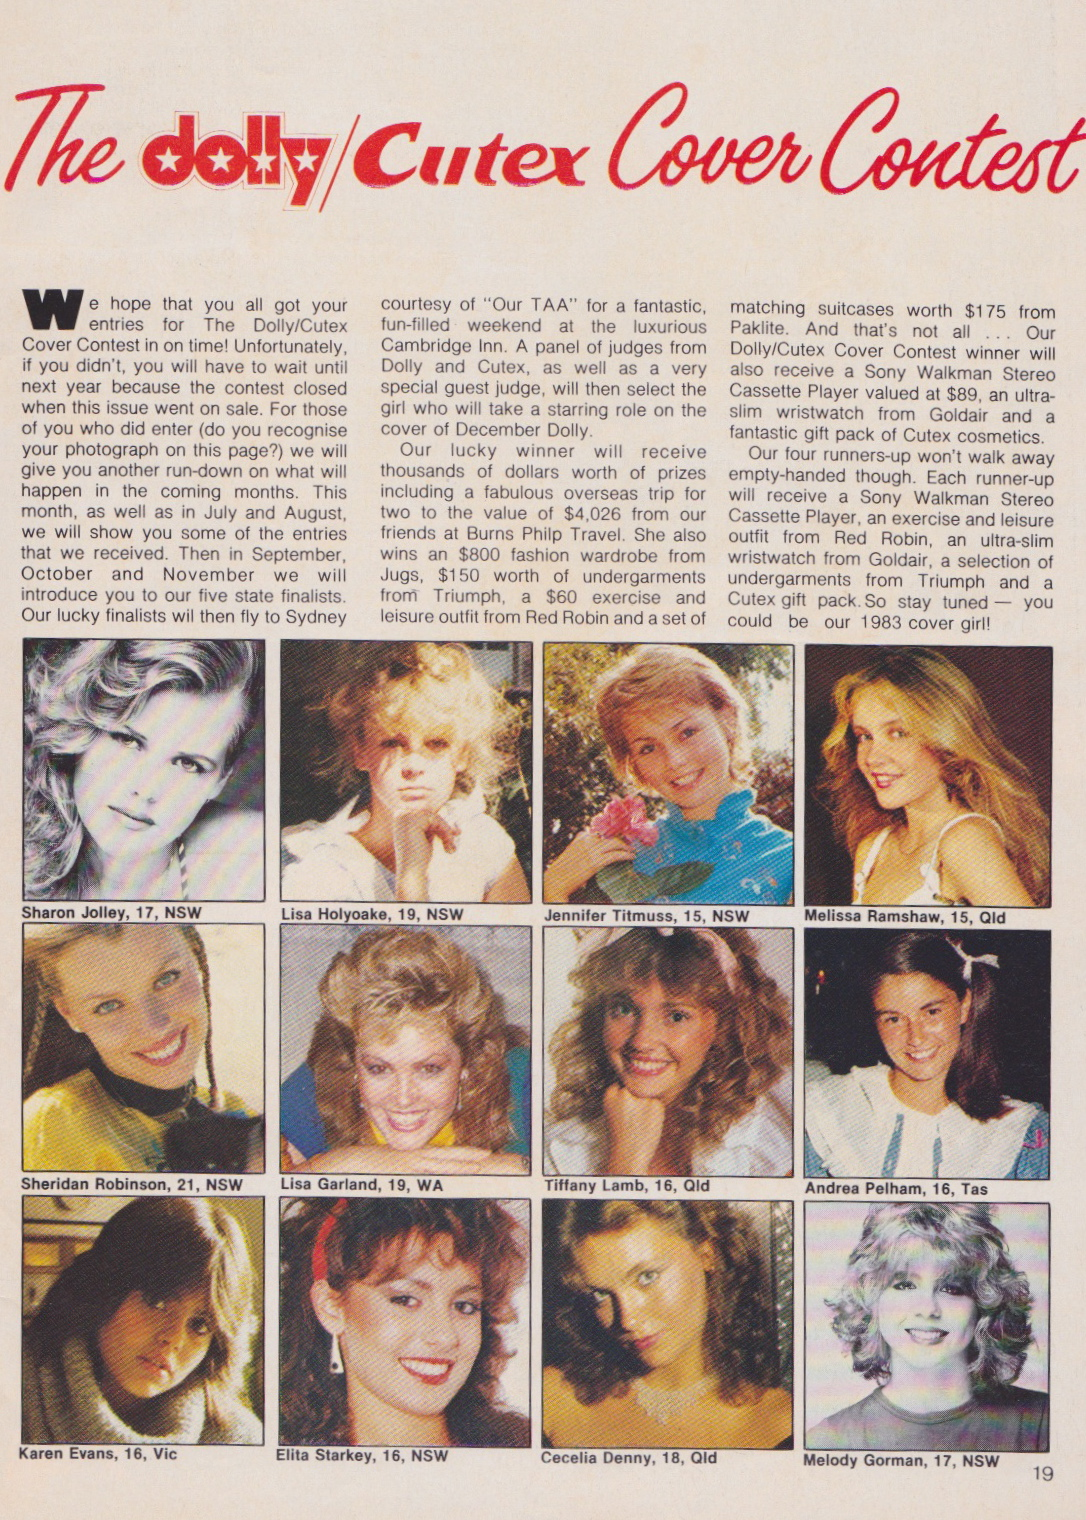 Dolly Covergirl Competition | 1983 Entrants 03.jpeg